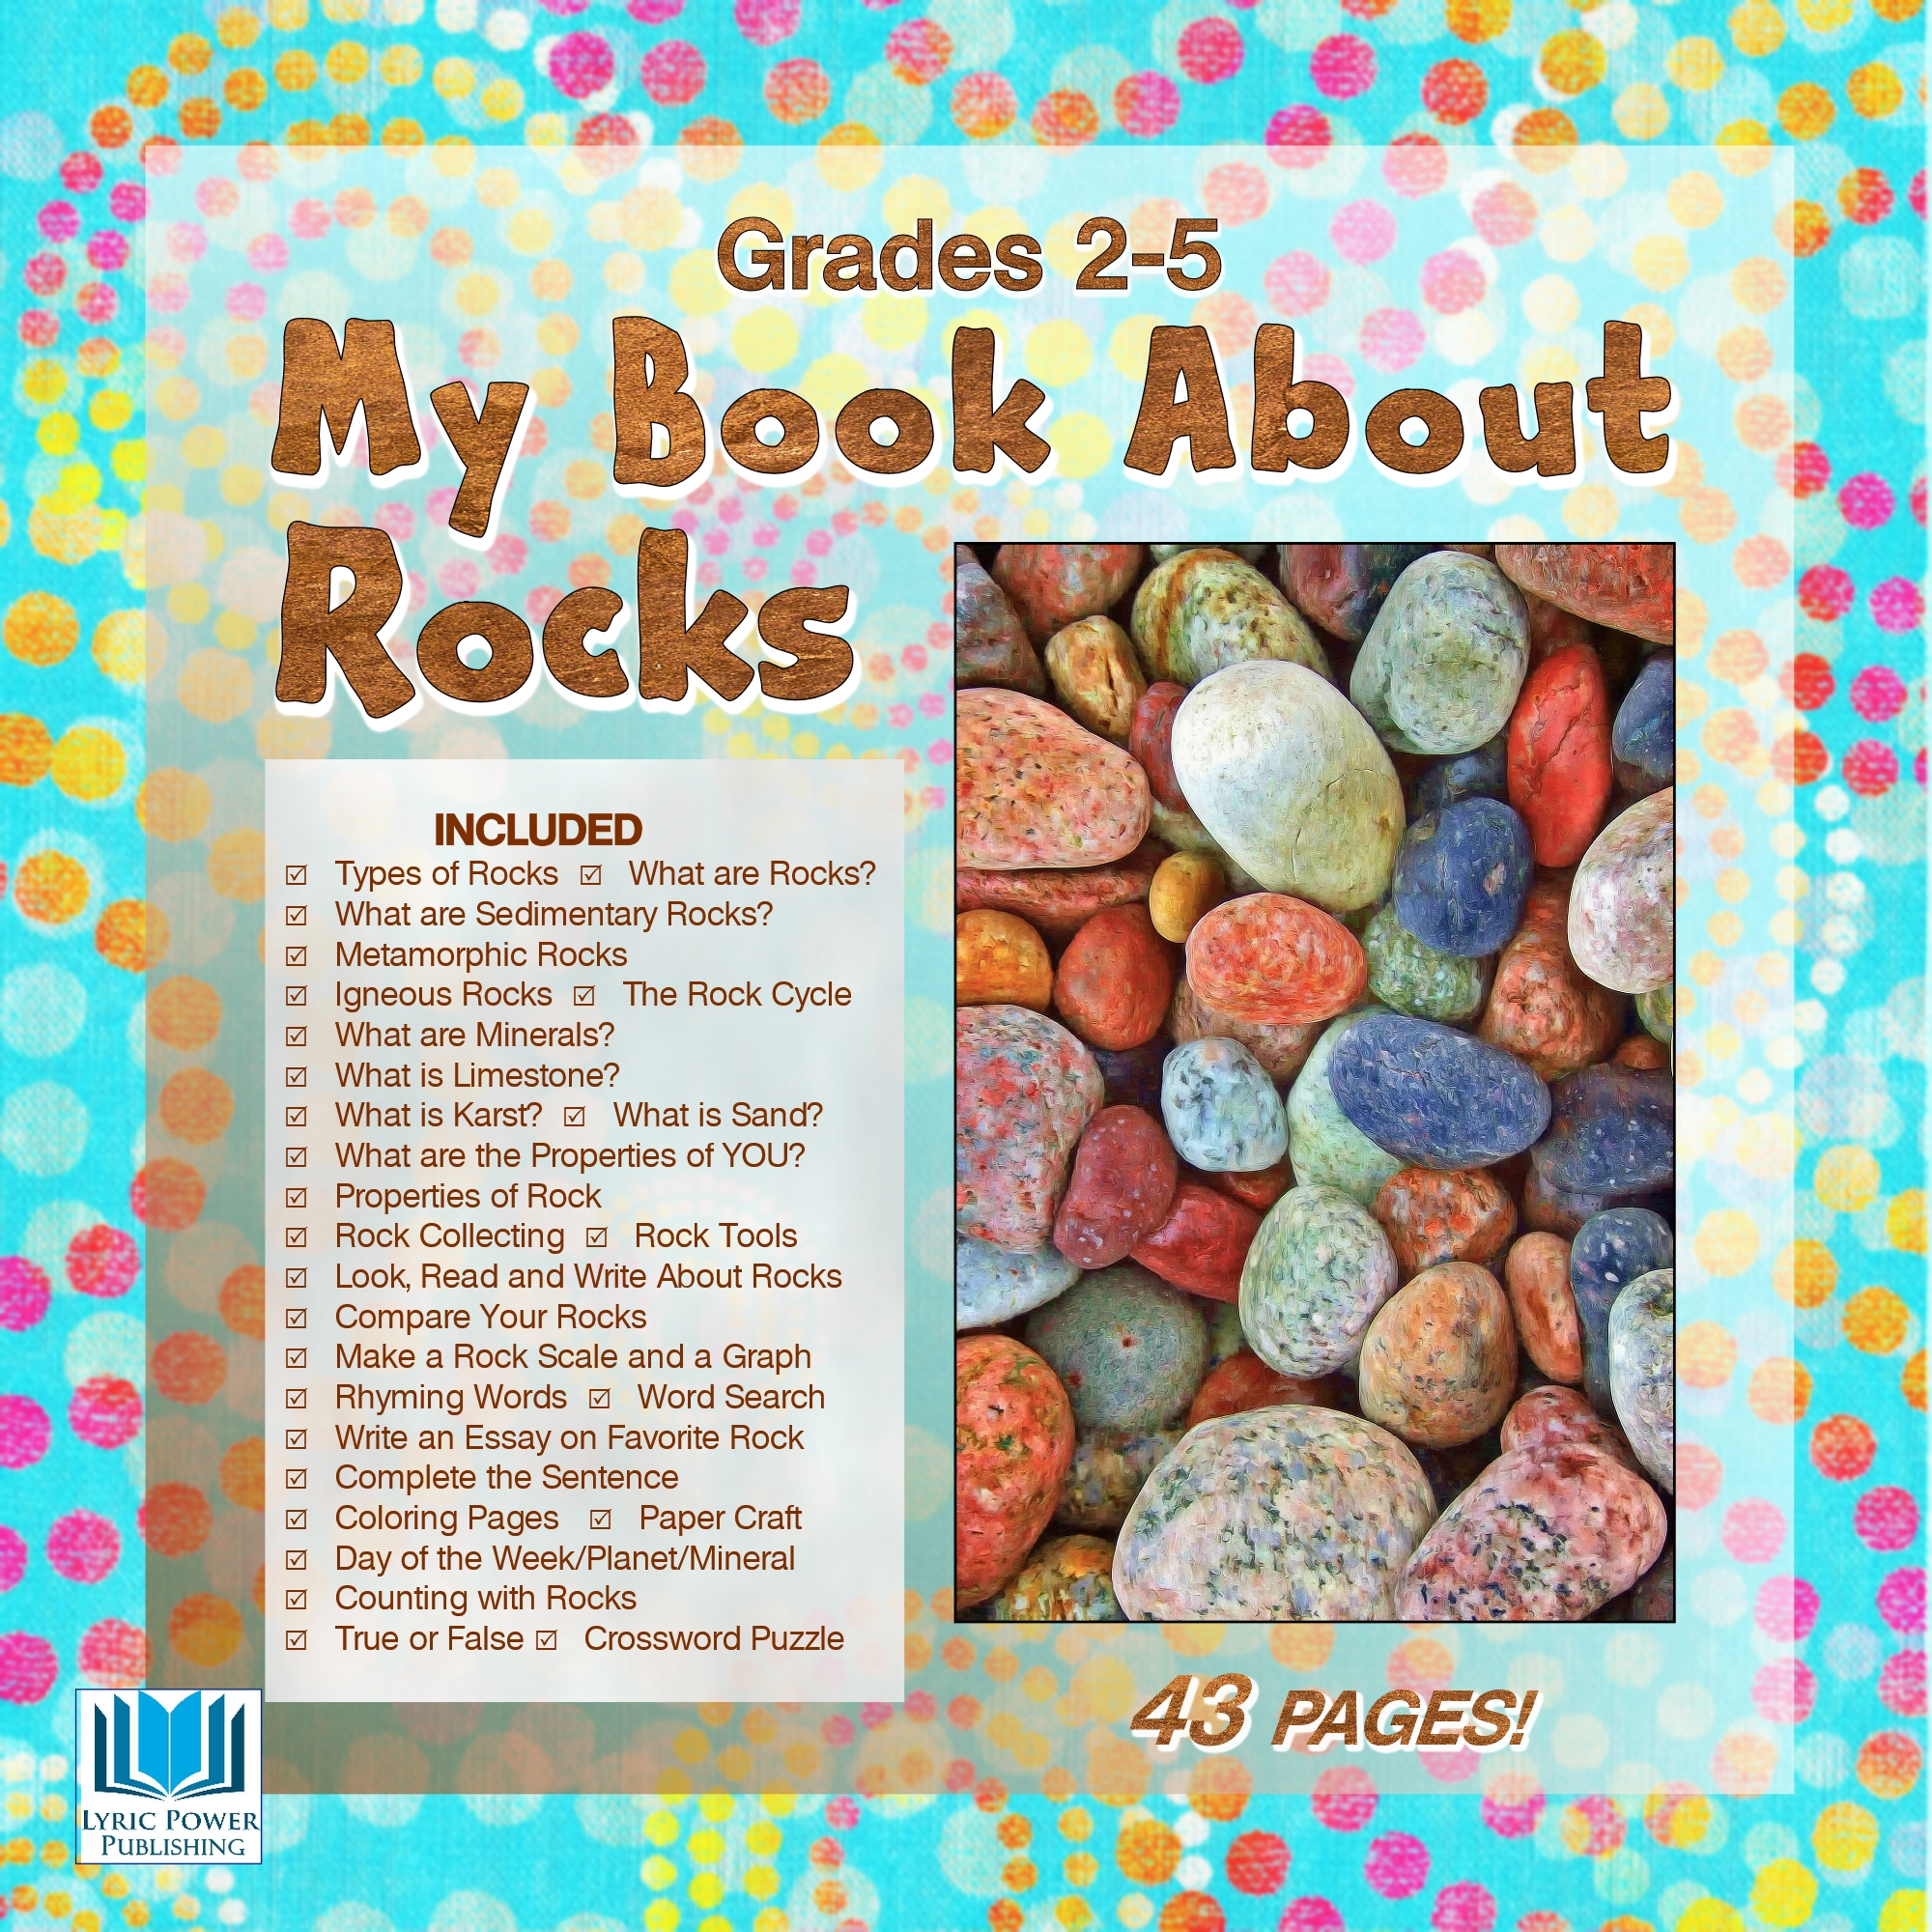 My Book About Rocks Grades 2 5 43 Pages Lyric Power Publishing